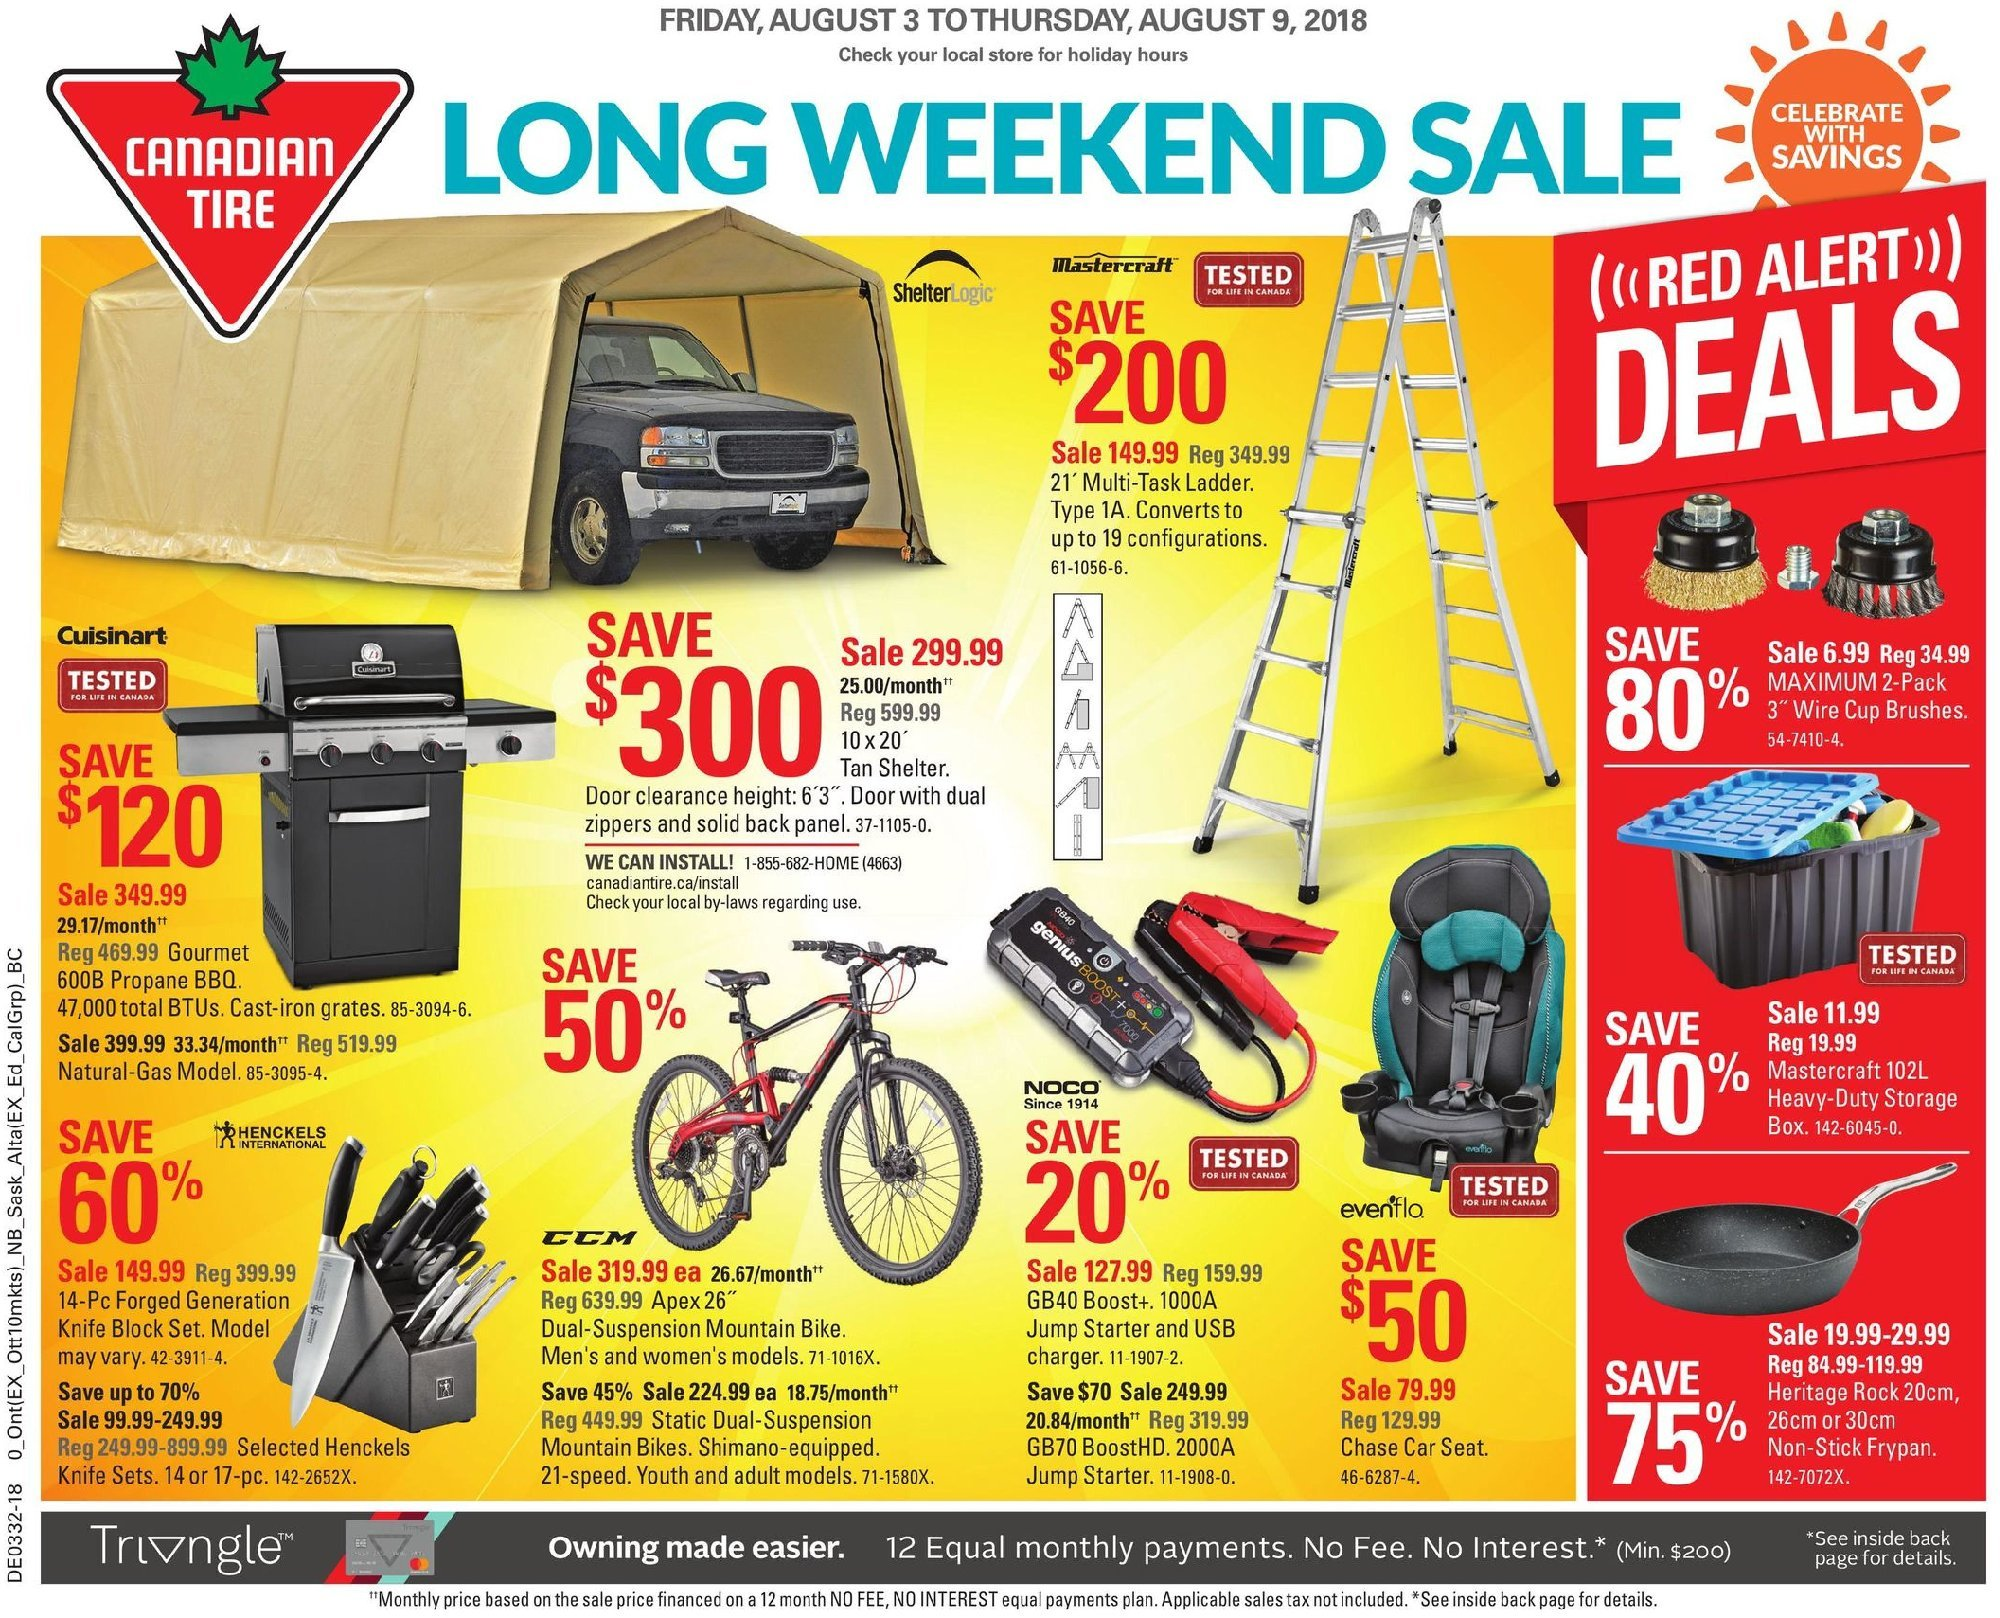 Canadian Tire Canada Flyer Long Weekend Sales August 3 August 9 2018 Shopping Canada